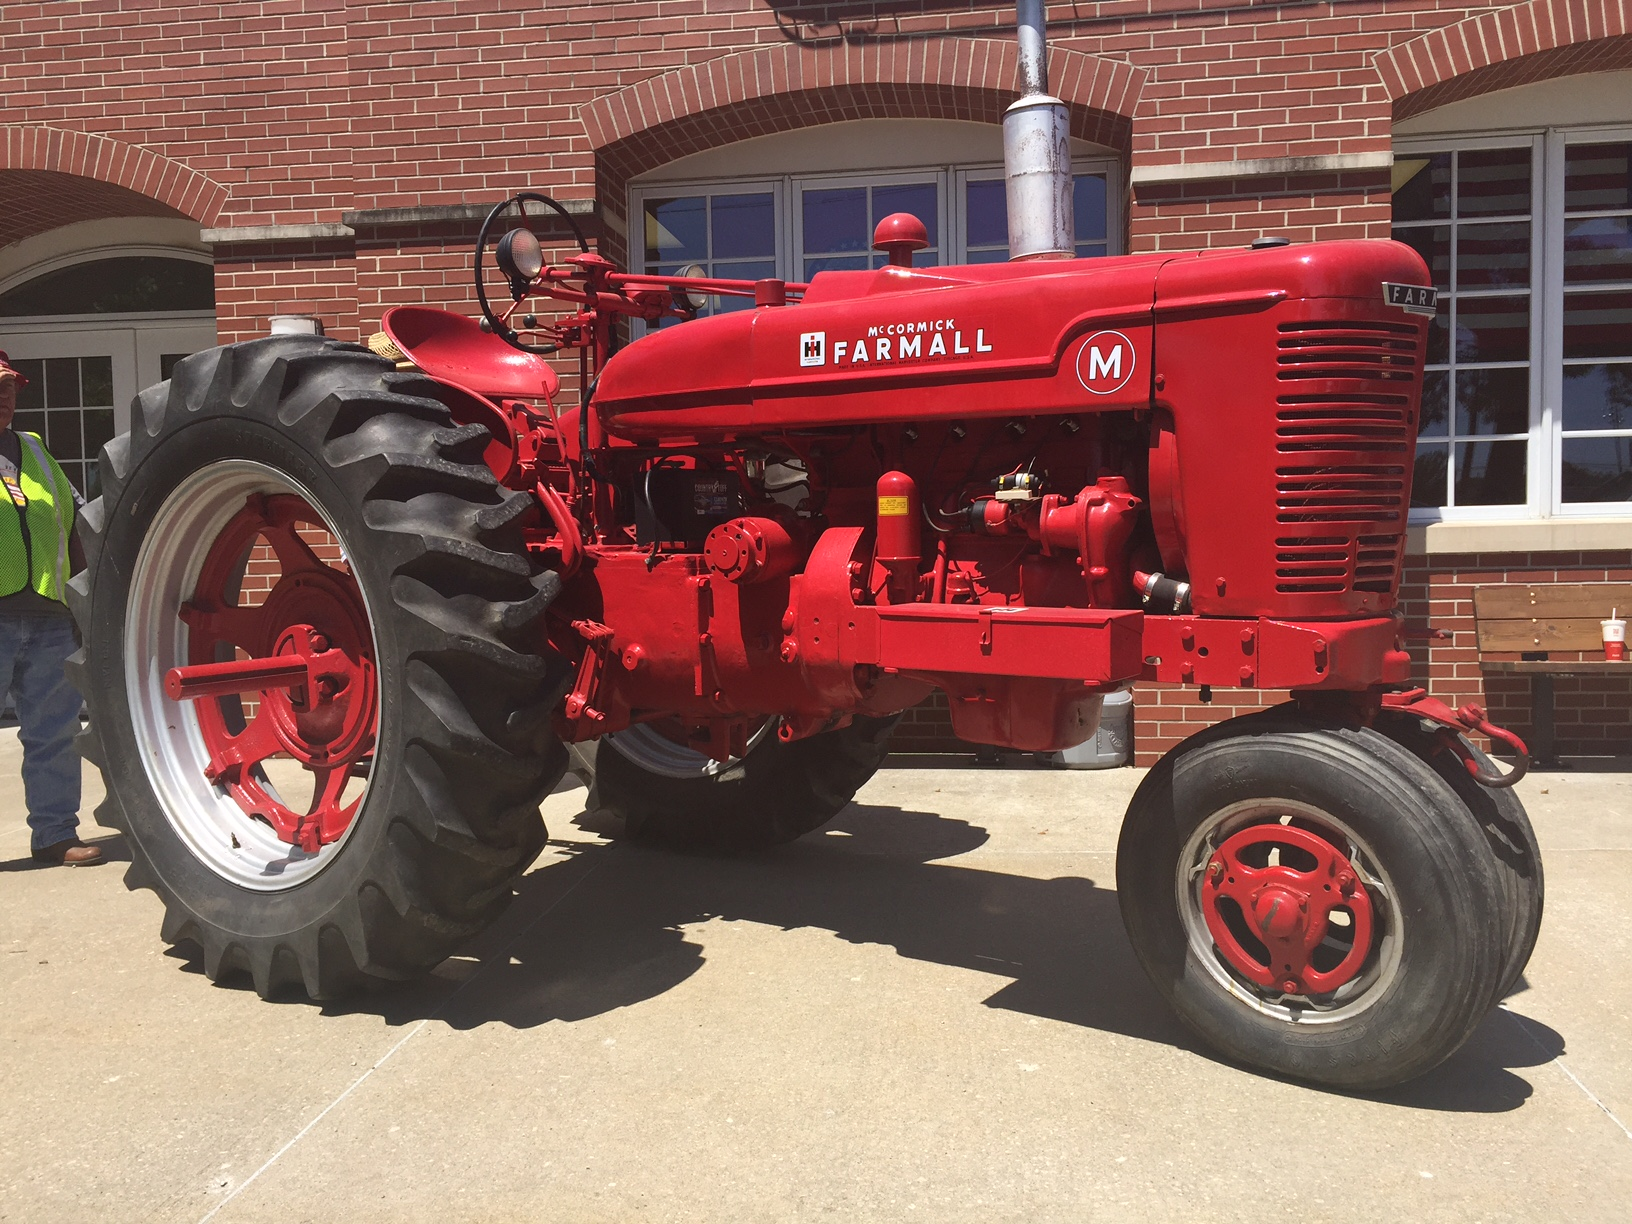 hight resolution of the tractor comes from burr ridge the ih experimental farm in hinsdale il the tractor was tested extensively both at the ih farm and at other local farms